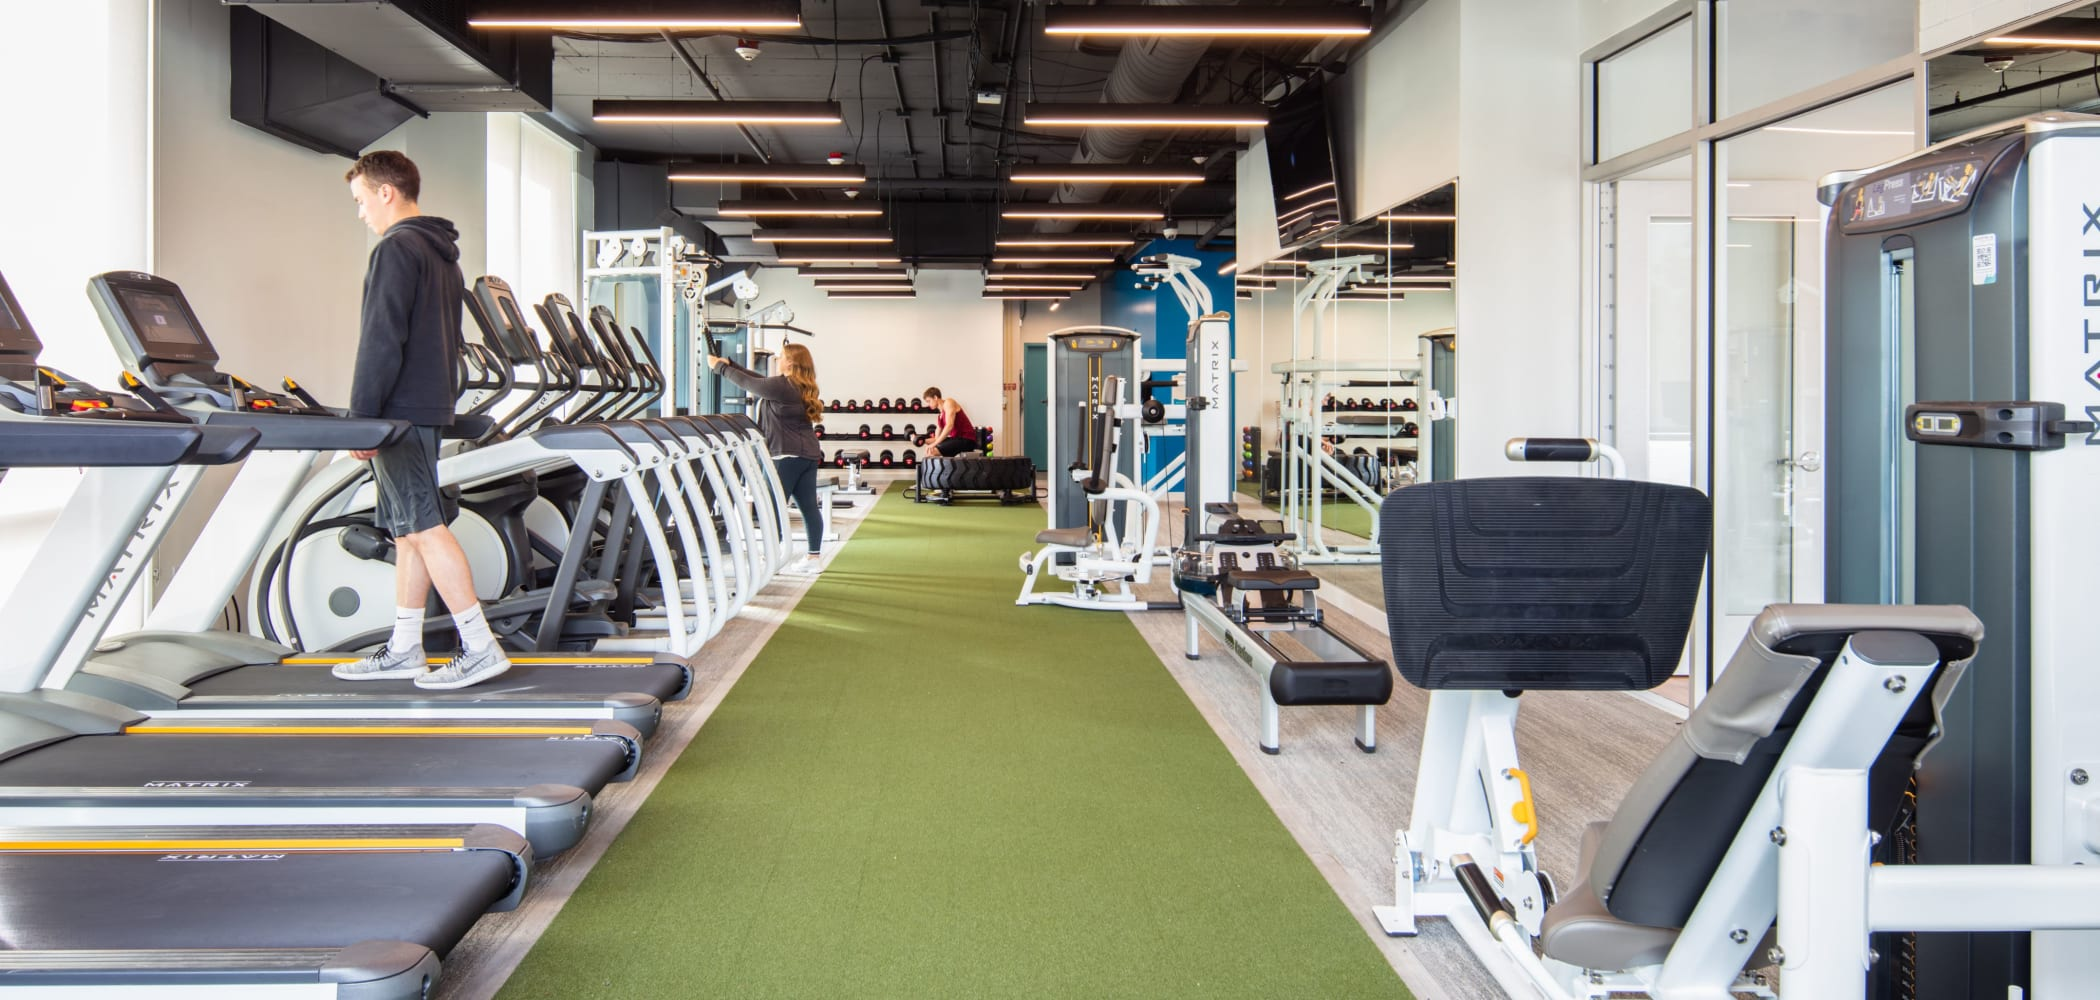 Fully equipped fitness center at evolve on Main in Pullman, Washington